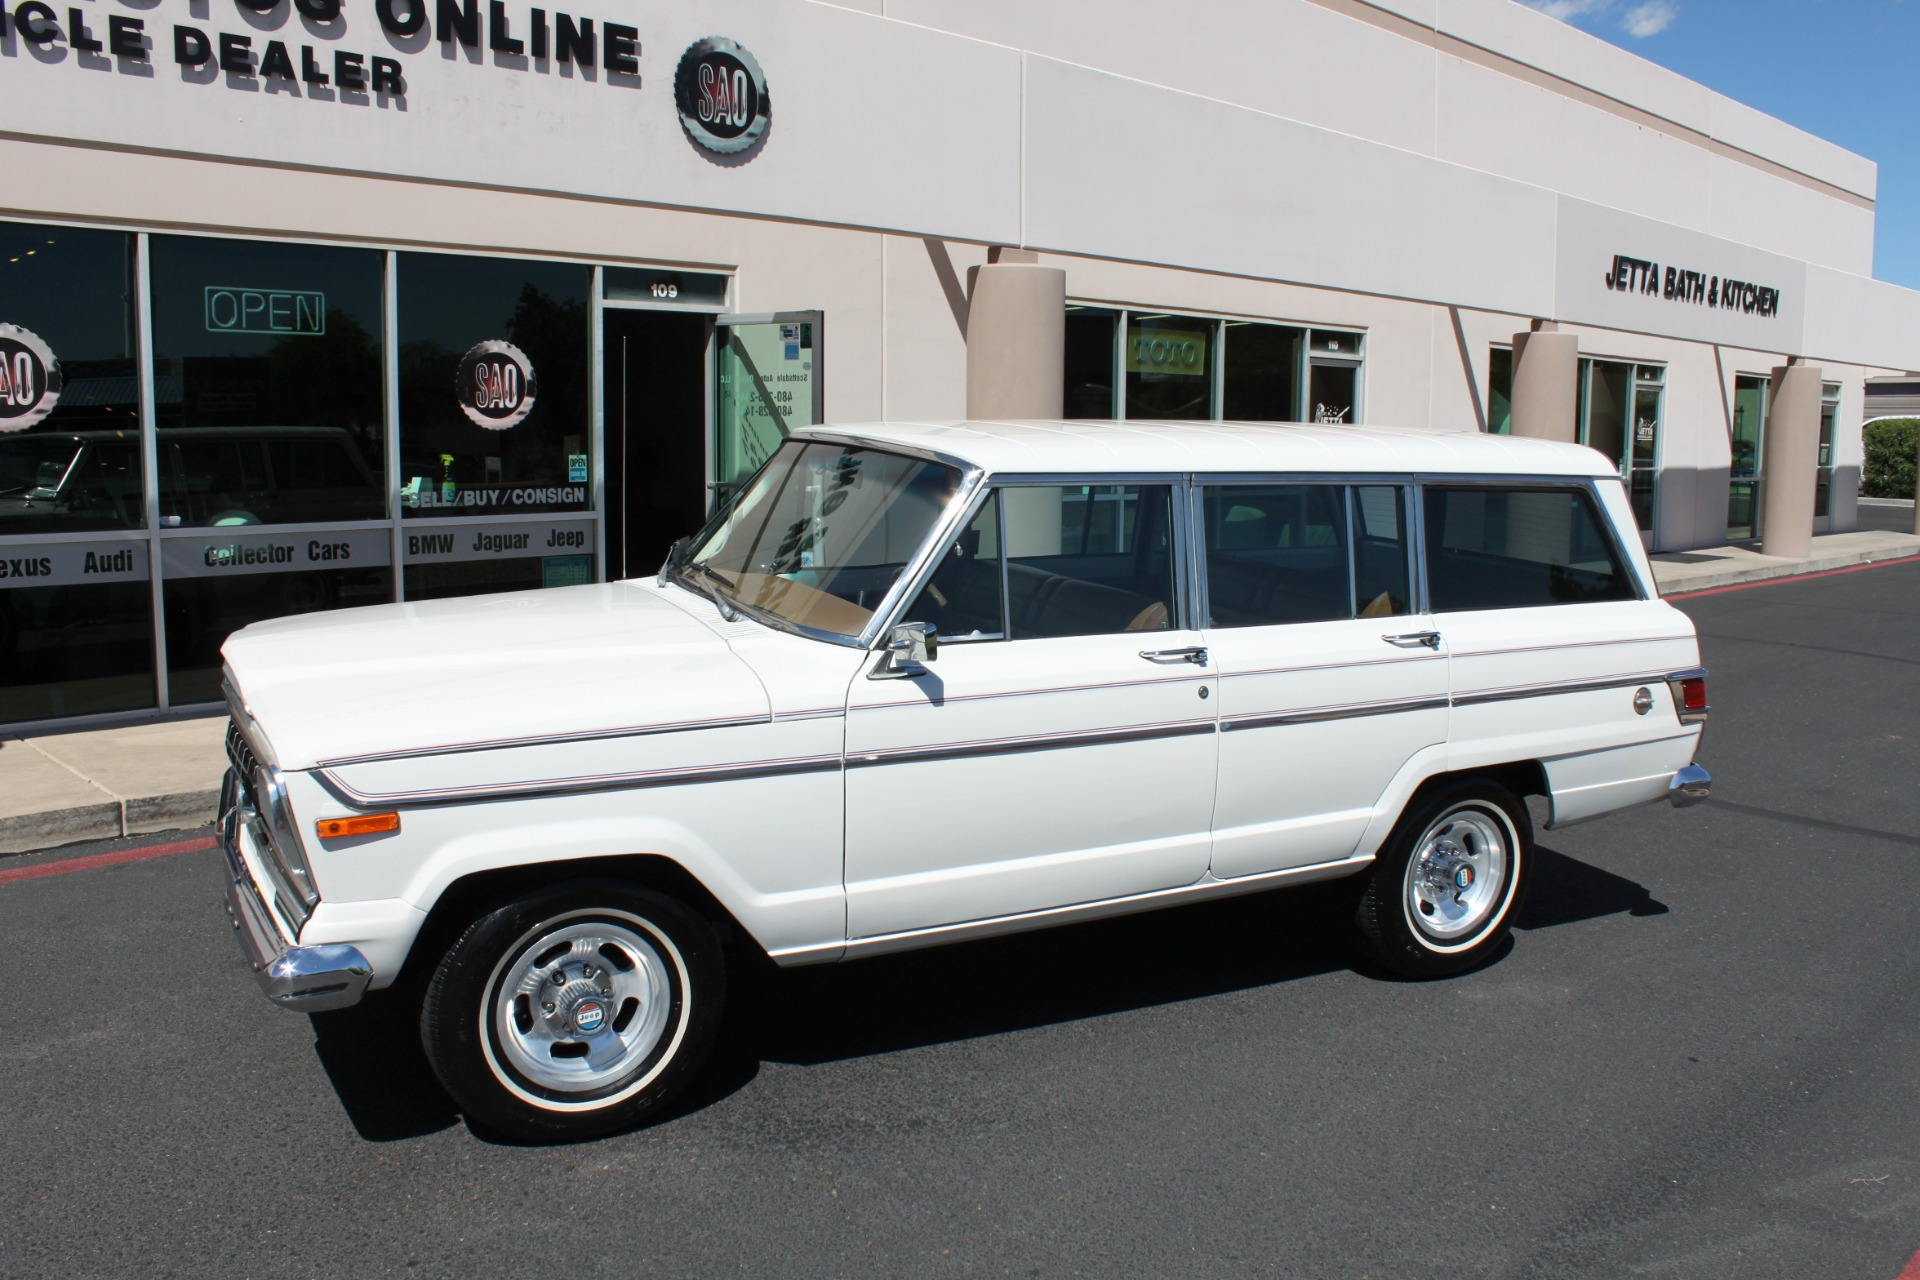 Used-1977-Jeep-Wagoneer-Custom-Fuel-Injected-66-Liter-401-Fiat